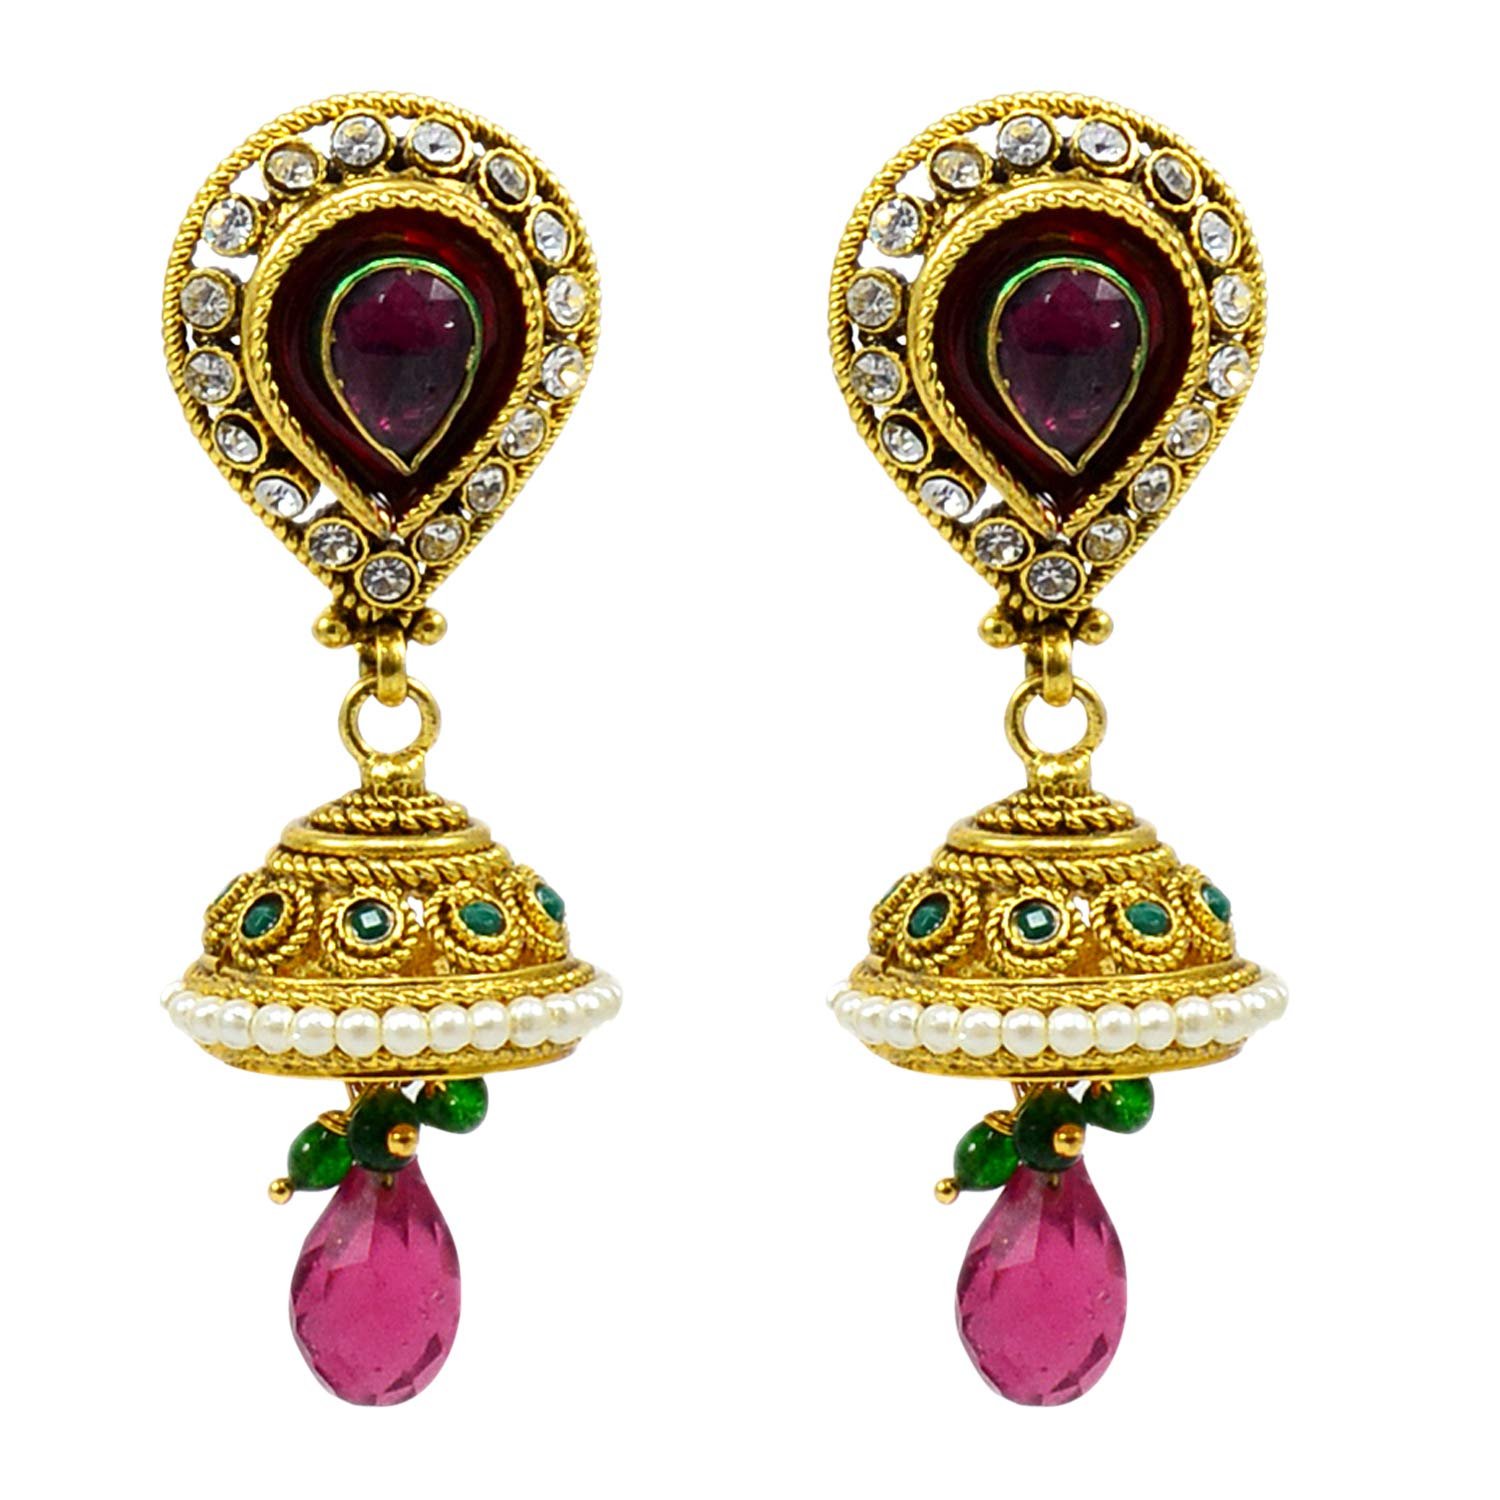 Created Kundan Meena Gold Plated Dangle Earring PG-109532 Saamarth Impex Emerald Ruby